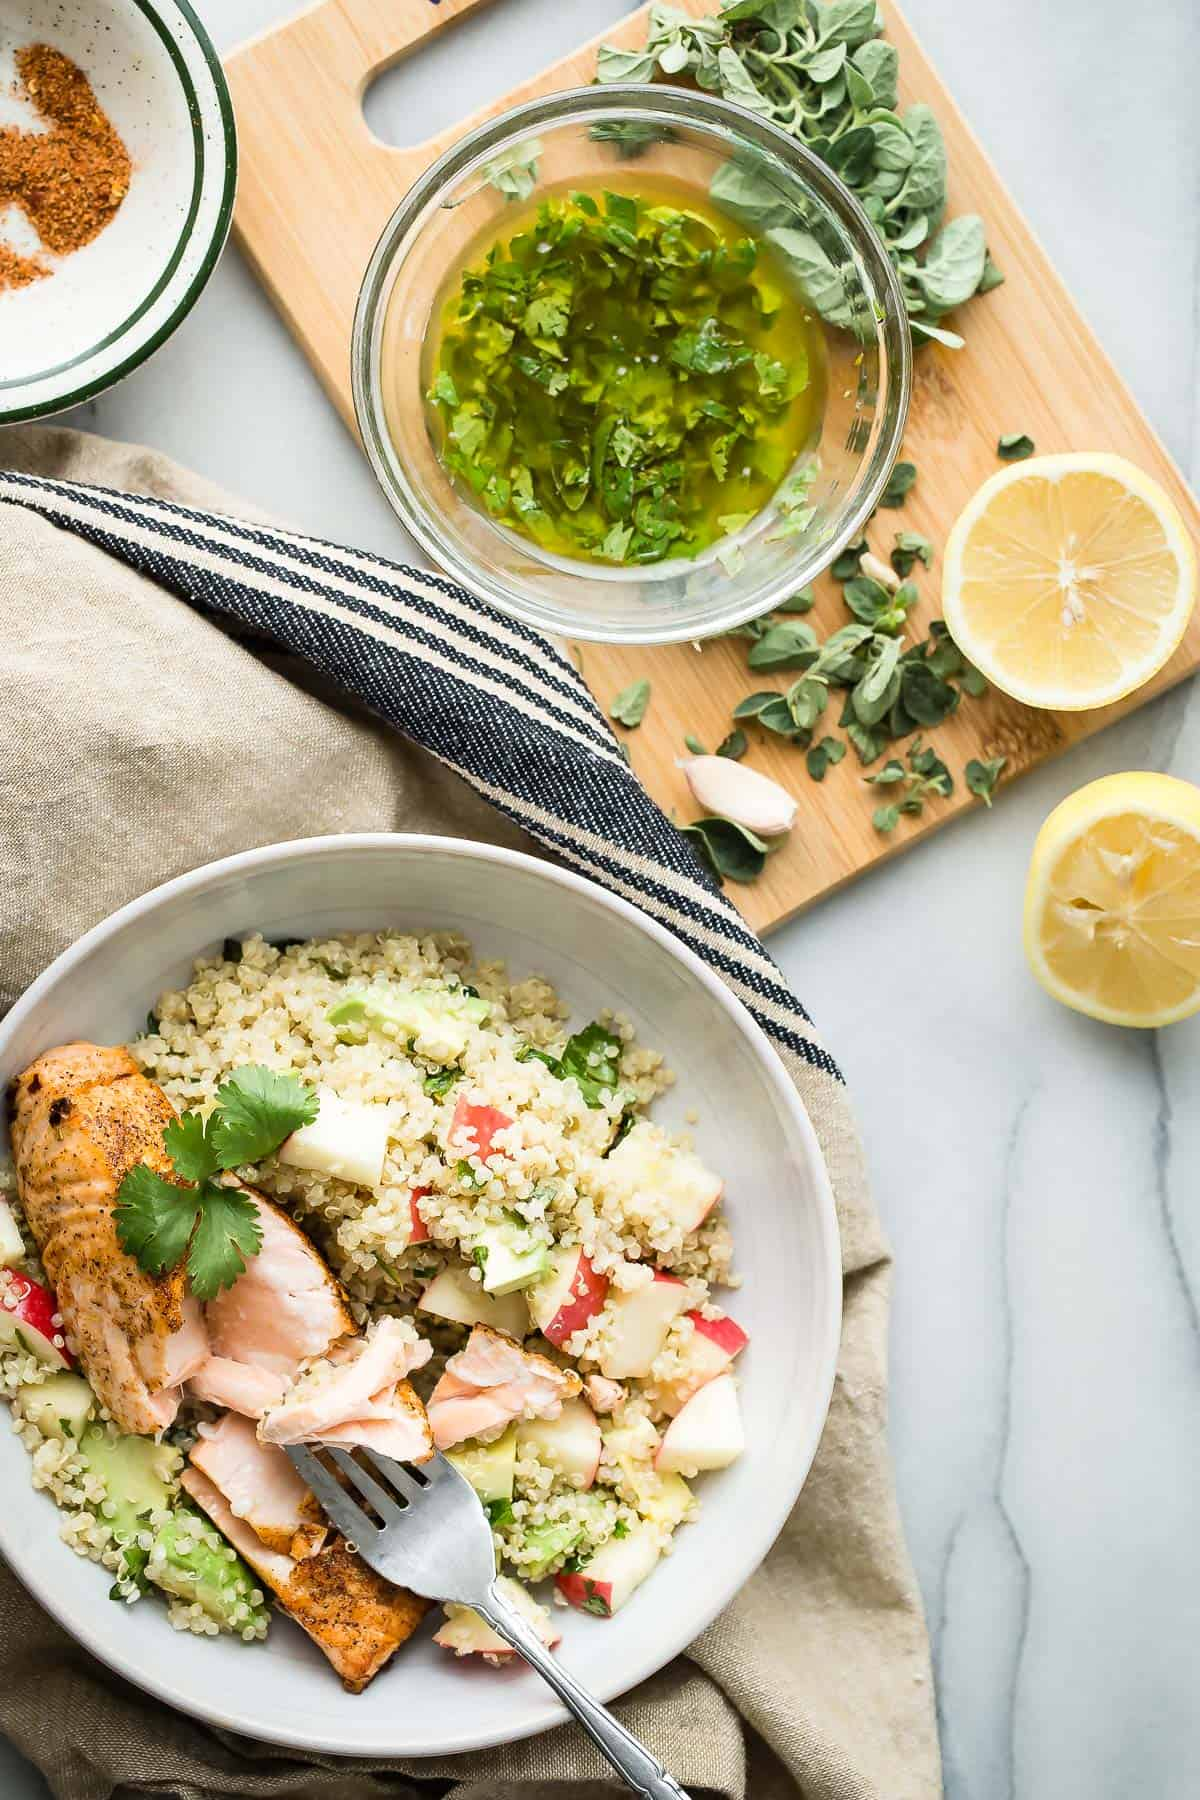 Healthy salmon quinoa bowl with apples, avocado and dressed with a fresh herb vinaigrette.